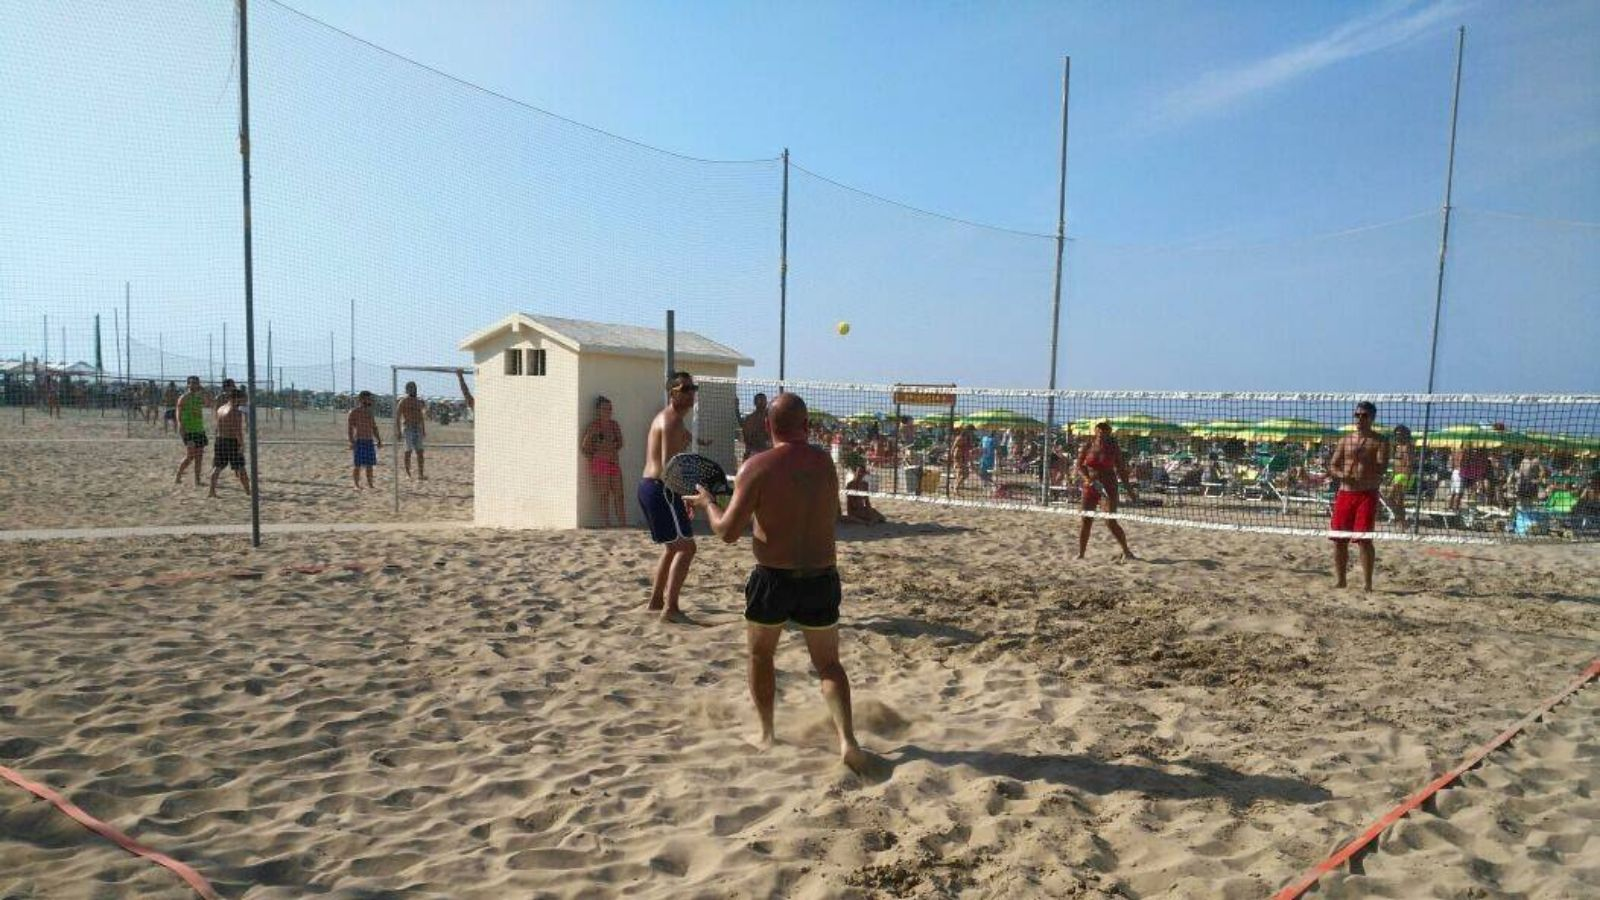 Campi da Beach Volley/Tennis